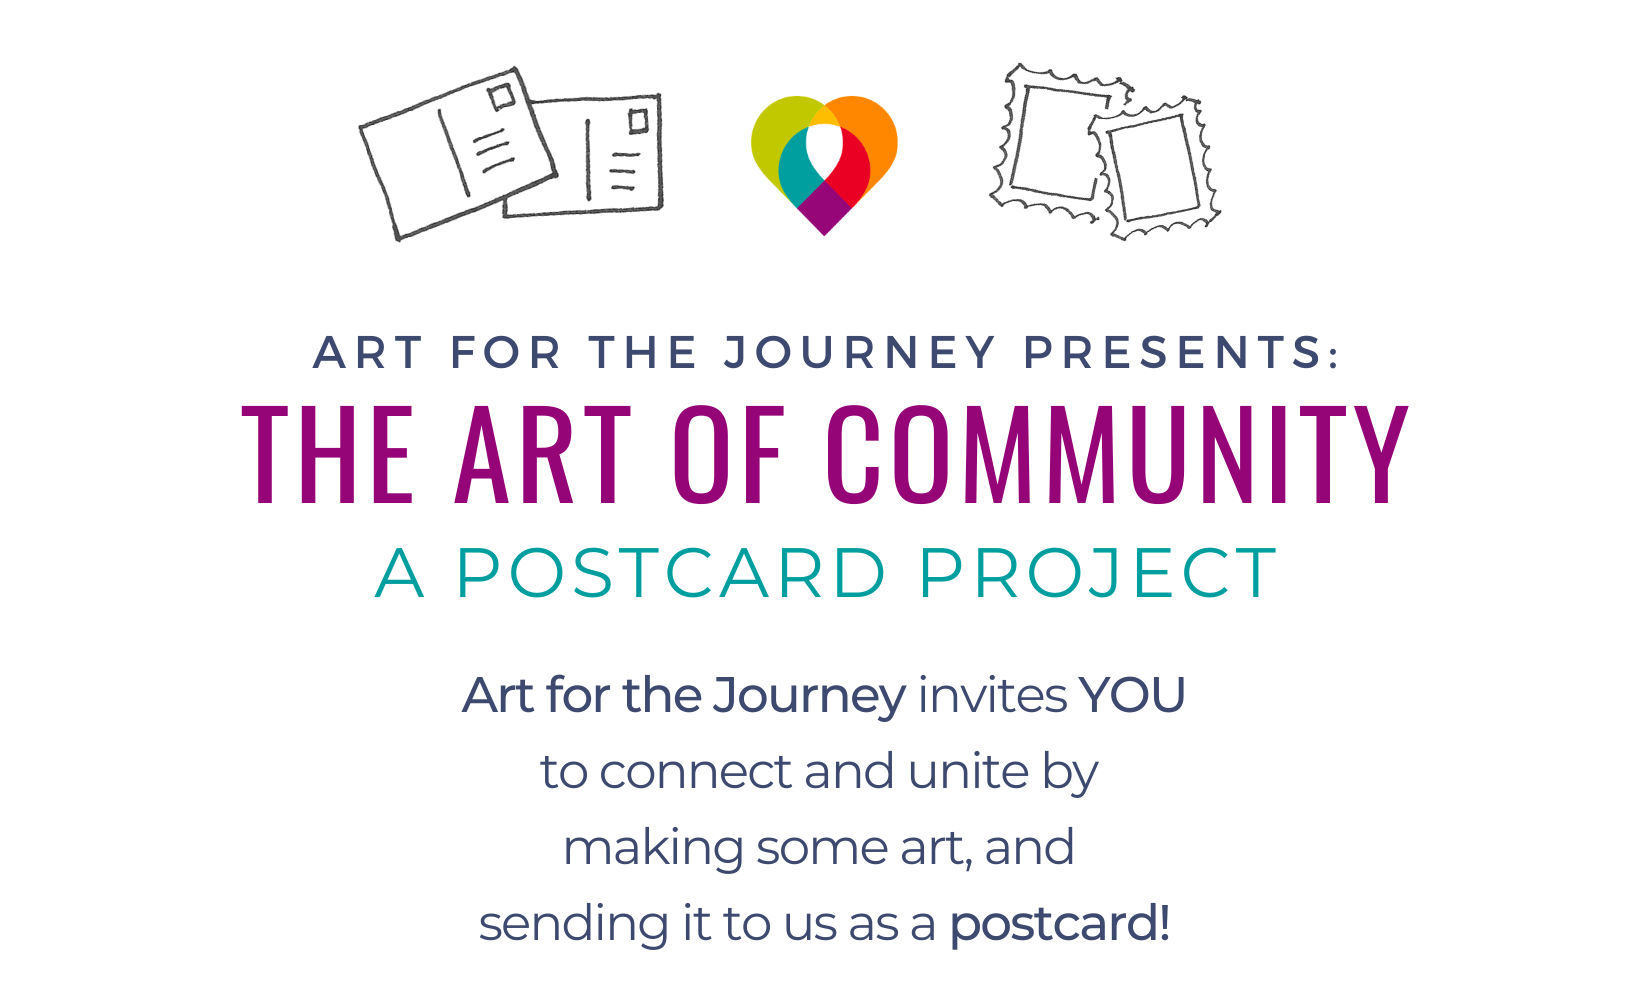 The Art of Community: A Postcard Project